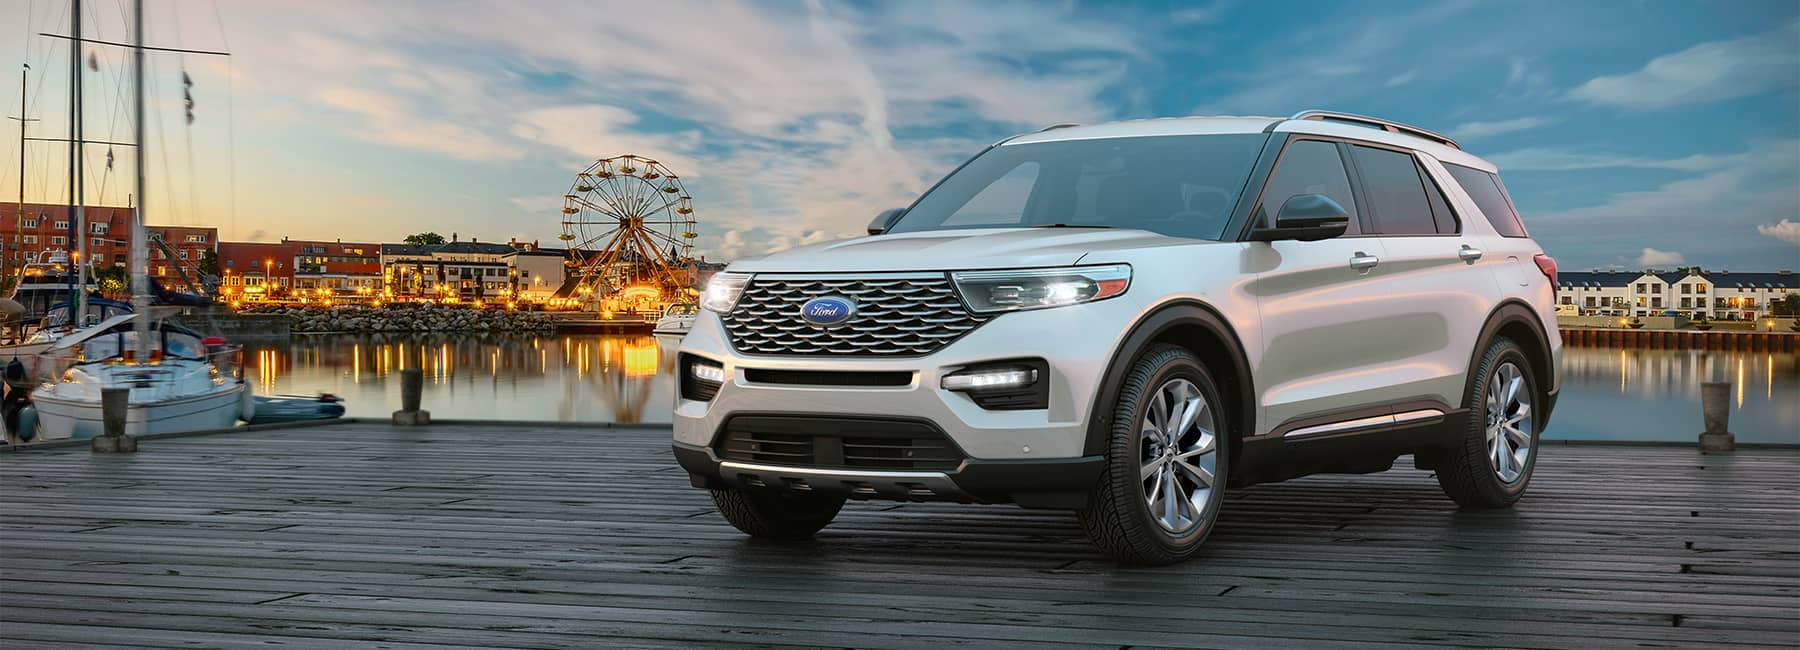 White 2021 Ford Explorer parked on a boardwalk with a ferris wheel in the background